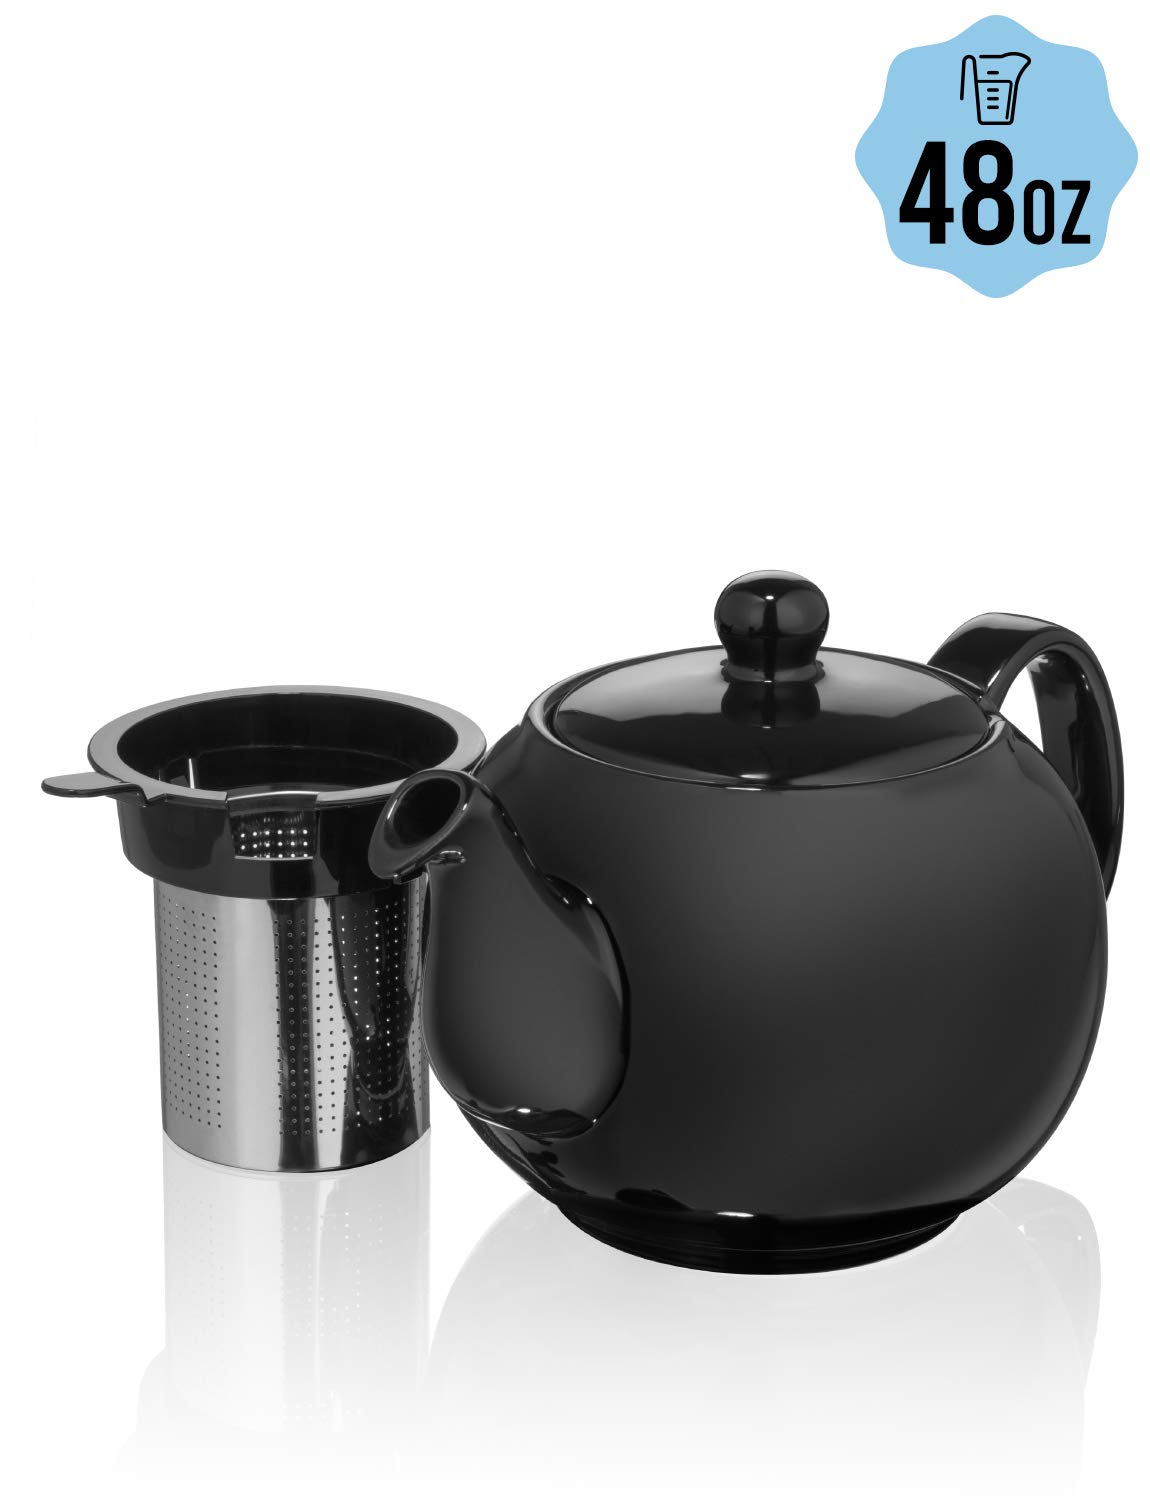 Saki Large Porcelain Teapot with Removable Stainless Steel Infuser, 48 ounce tea pot (Black) by Saki